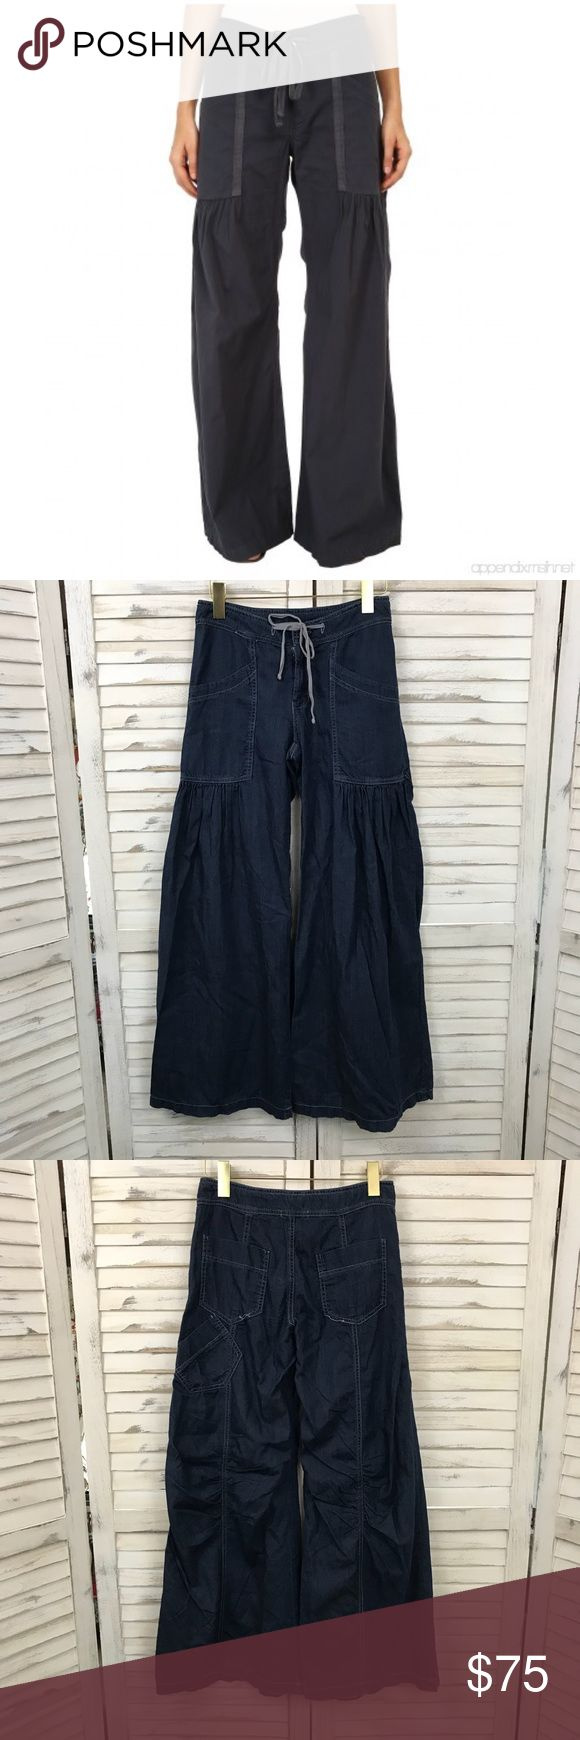 """XCVI WILLOW WIDE LEG PANTS WOMENS EXTRA SMALL XCVI WILLOW WIDE LEG PANTS WOMENS EXTRA SMALL   Description: Flared leg cut Mid rise waist Dark Blue Solid  Measurements: 29"""" Inseam, 10"""" Rise, 32"""" Waist  Condition: Good pre-owned condition, a few loose threads at the pockets, missing button, minor wear at cuffs. XCVI Pants Wide Leg"""